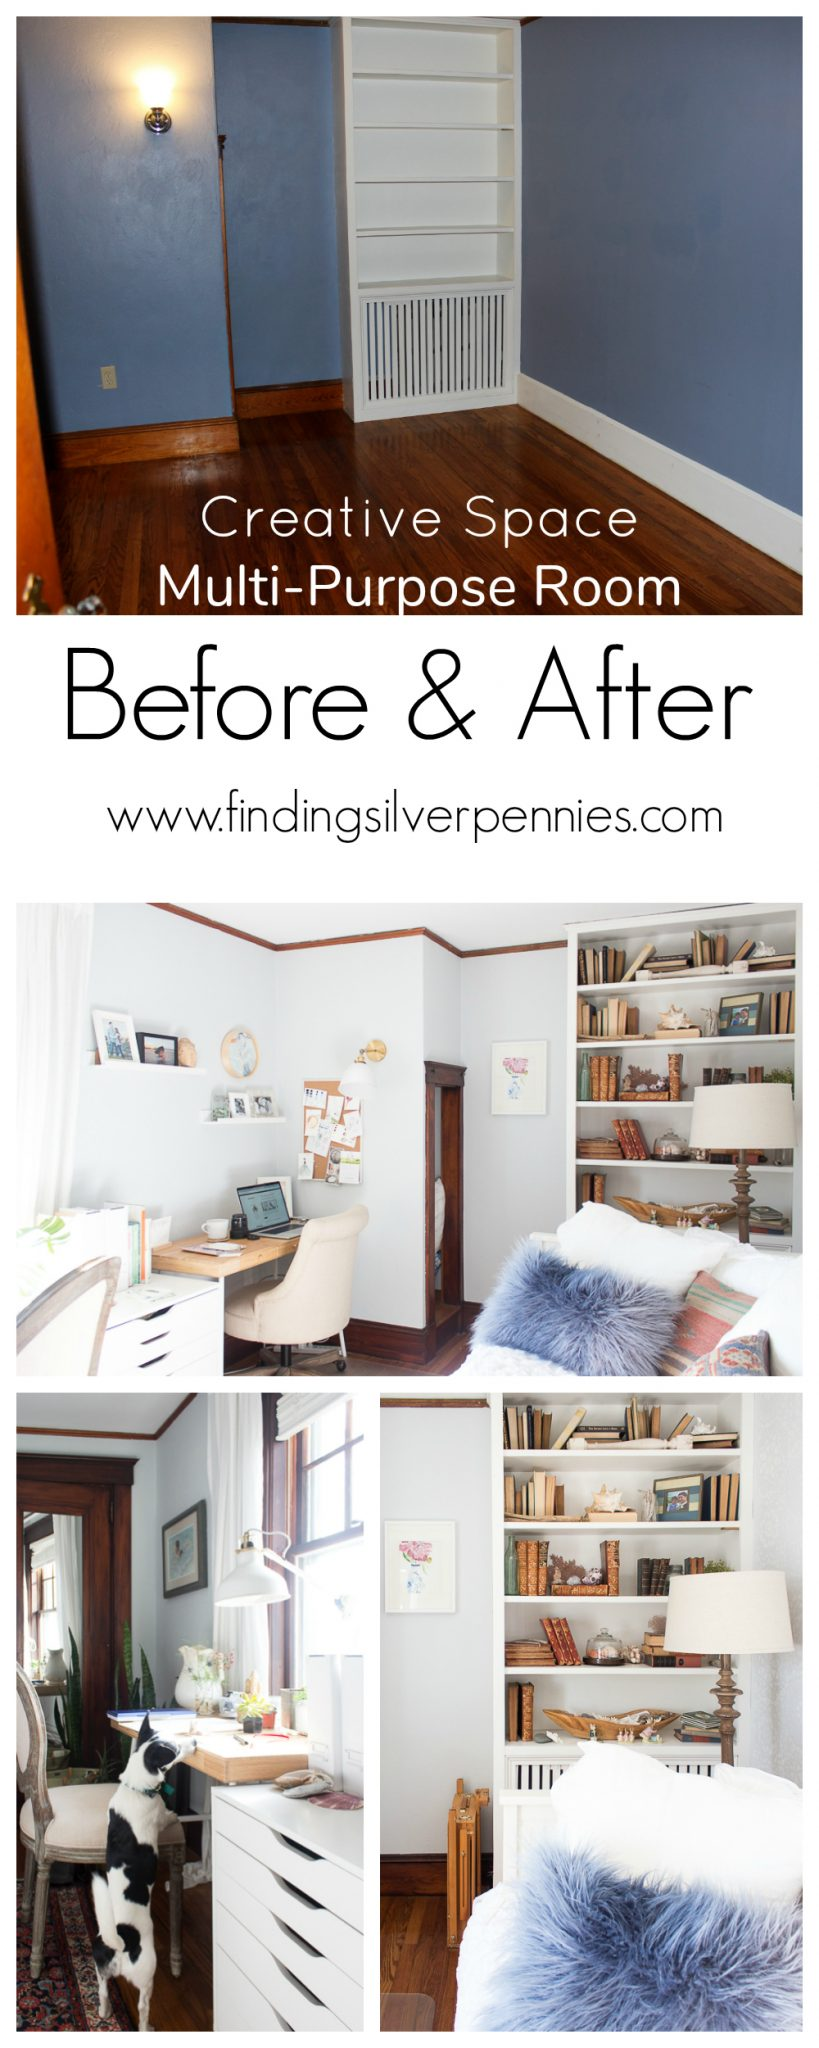 Creative Space Multi-Purpose Room Before & After - Finding Silver Pennies